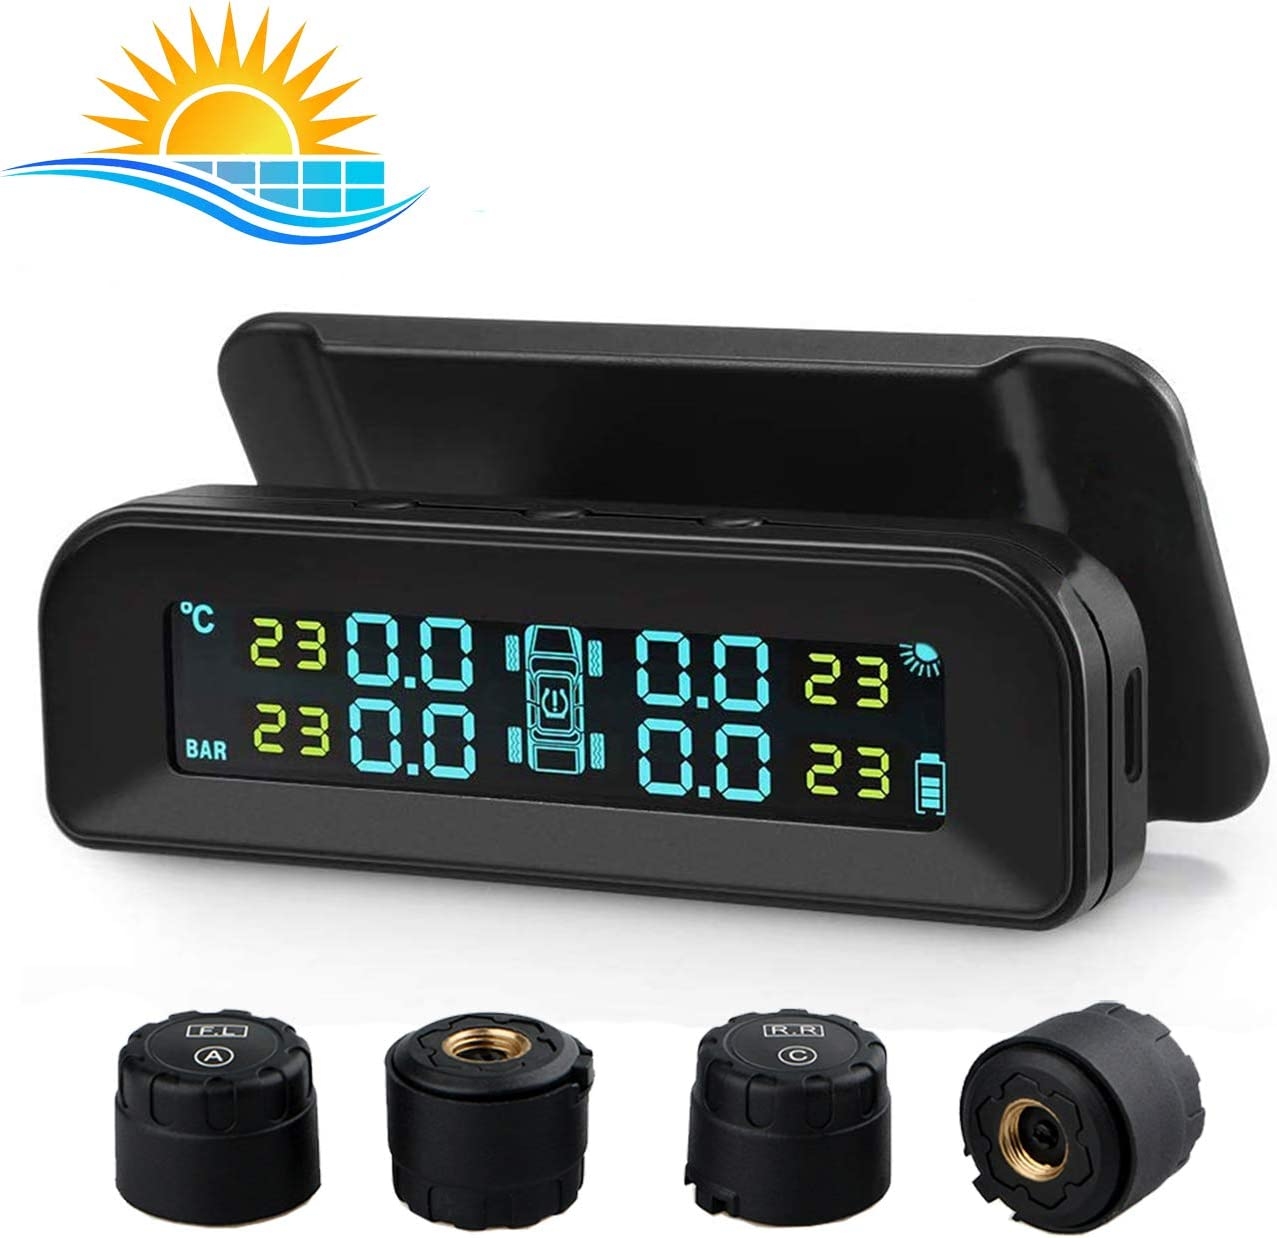 Spurtar Sale Special Price TPMS Tyre Pressure Monitoring System Solar Popular brand in the world Wirele Power